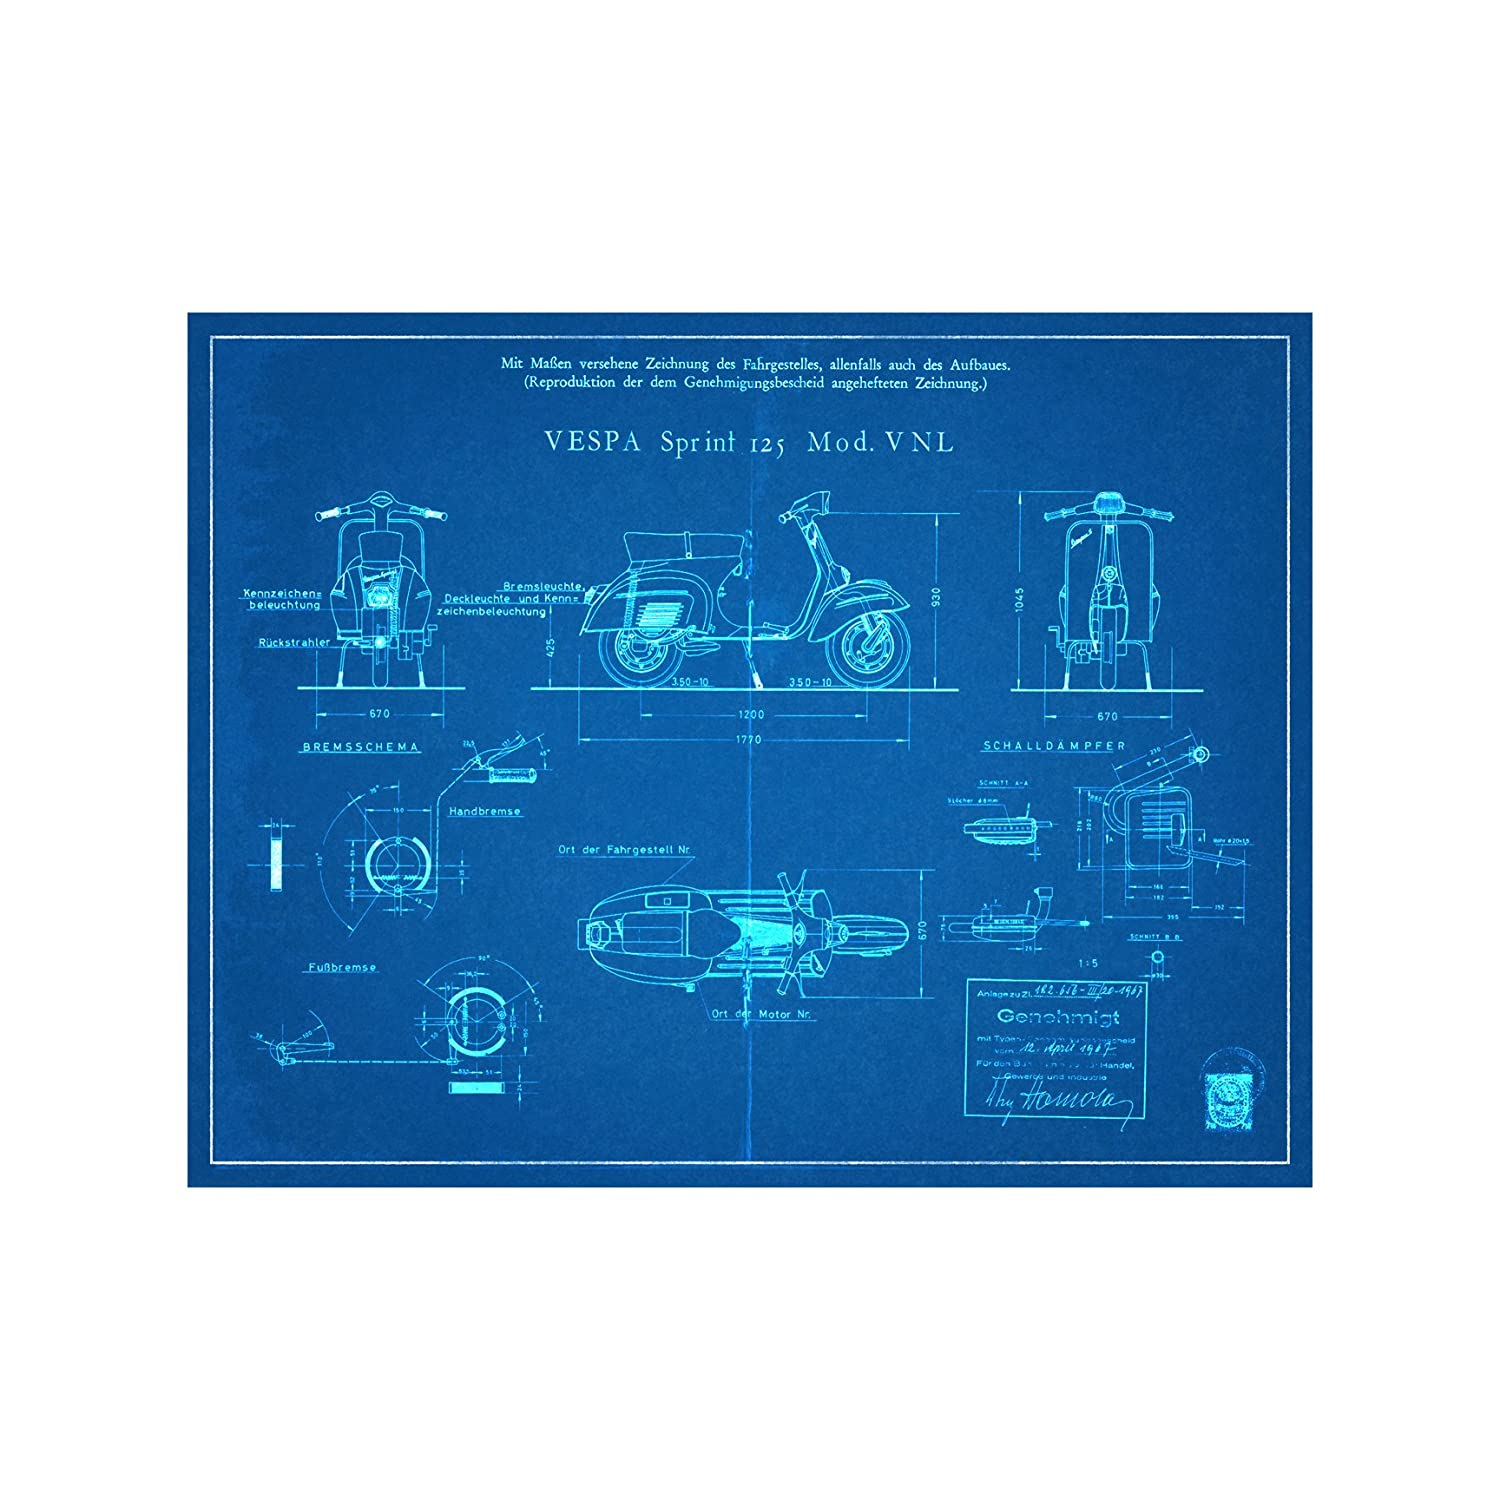 18 tall x 14 wide Blueprint Style Vespa Scooter Engineers Diagram Art Print